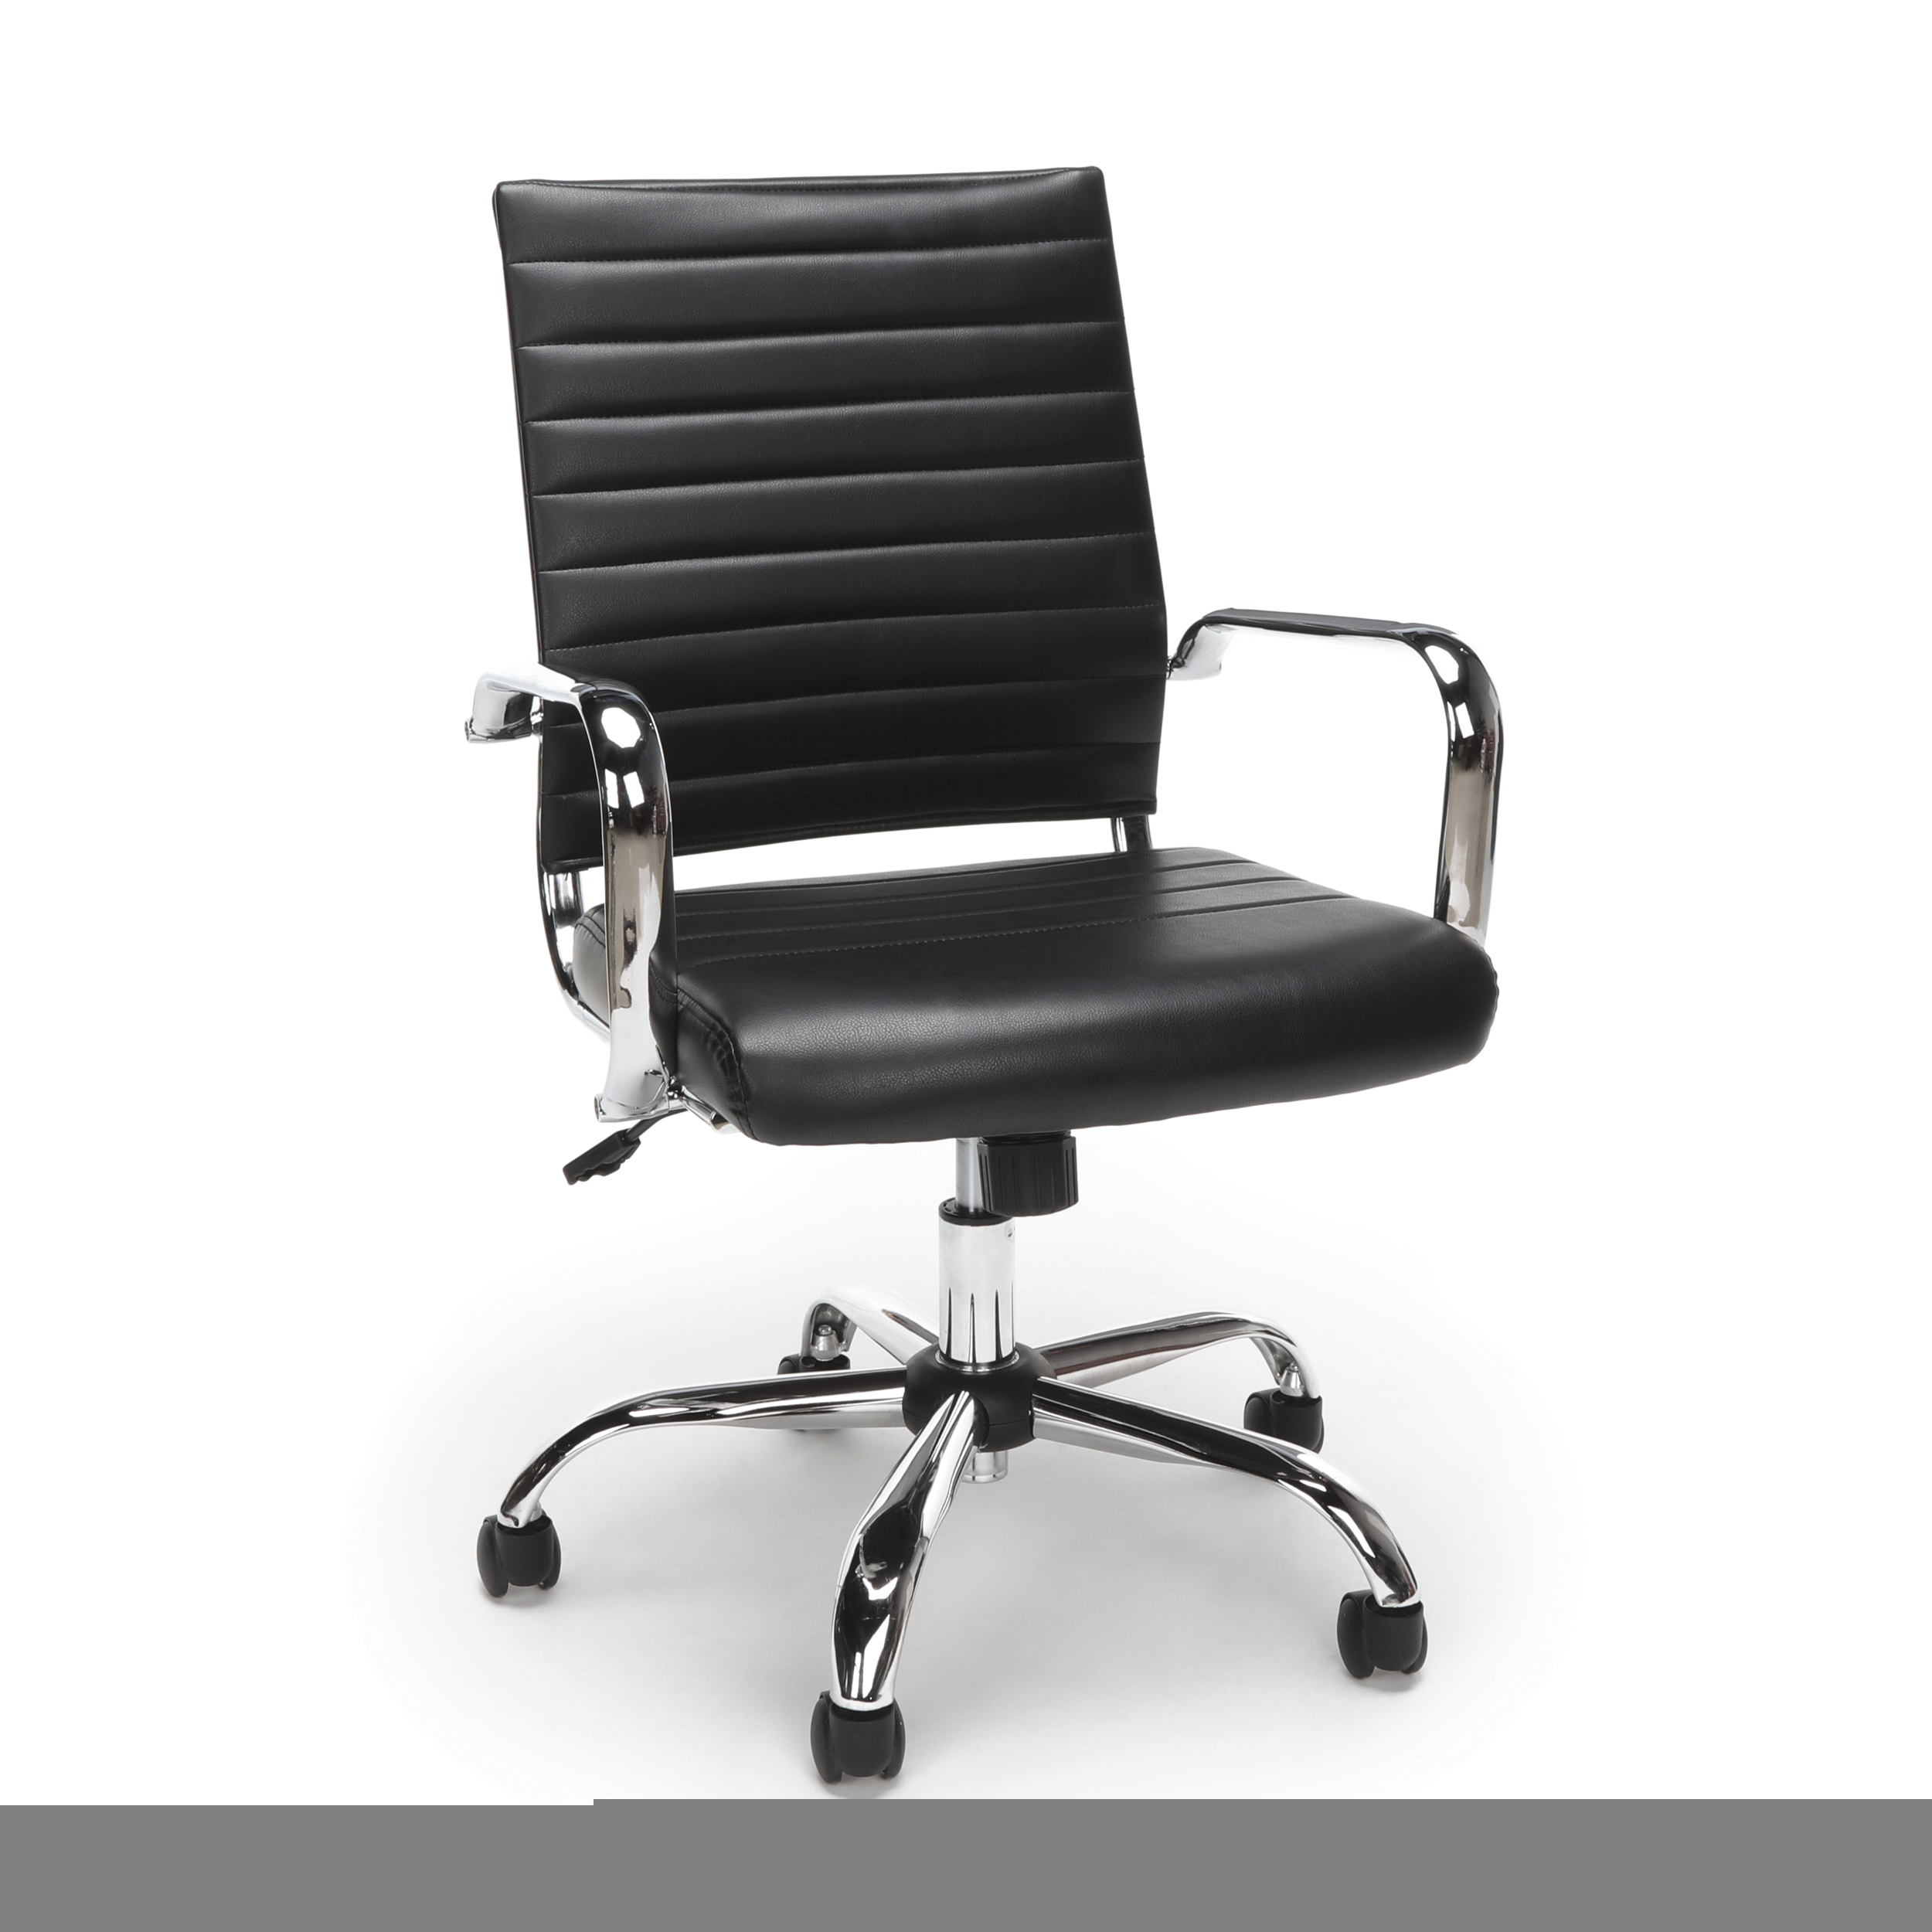 durable office chairs poang chair review furniture 250 lbs steel frame ribbed